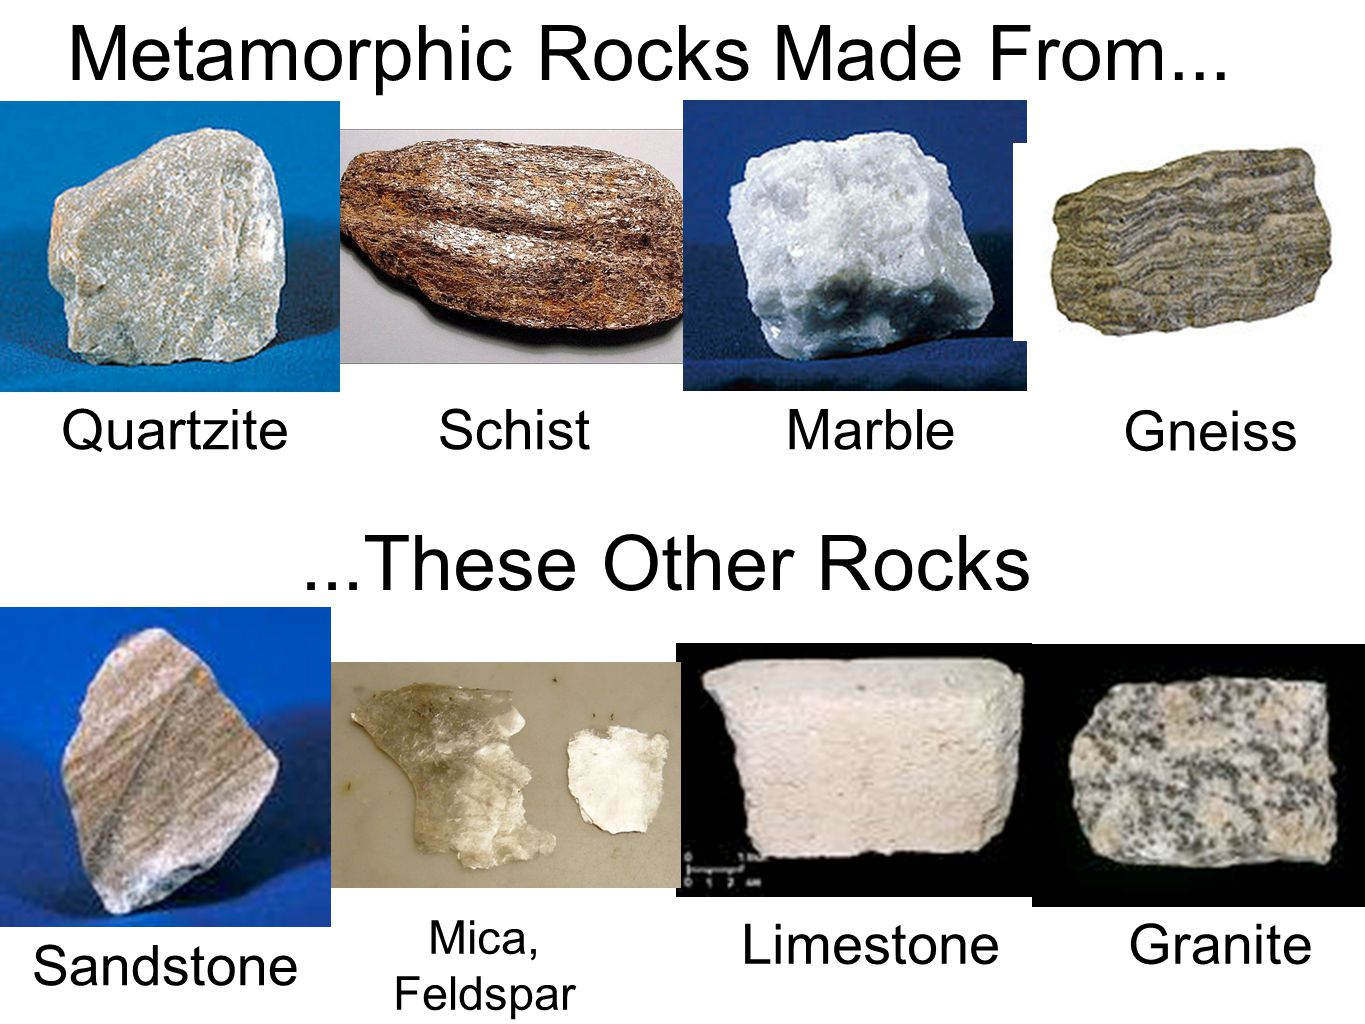 Schist Quartzite Marble Gneiss Sandstone LimestoneGranite Metamorphic Rocks Made From......These Other Rocks Mica, Feldspar